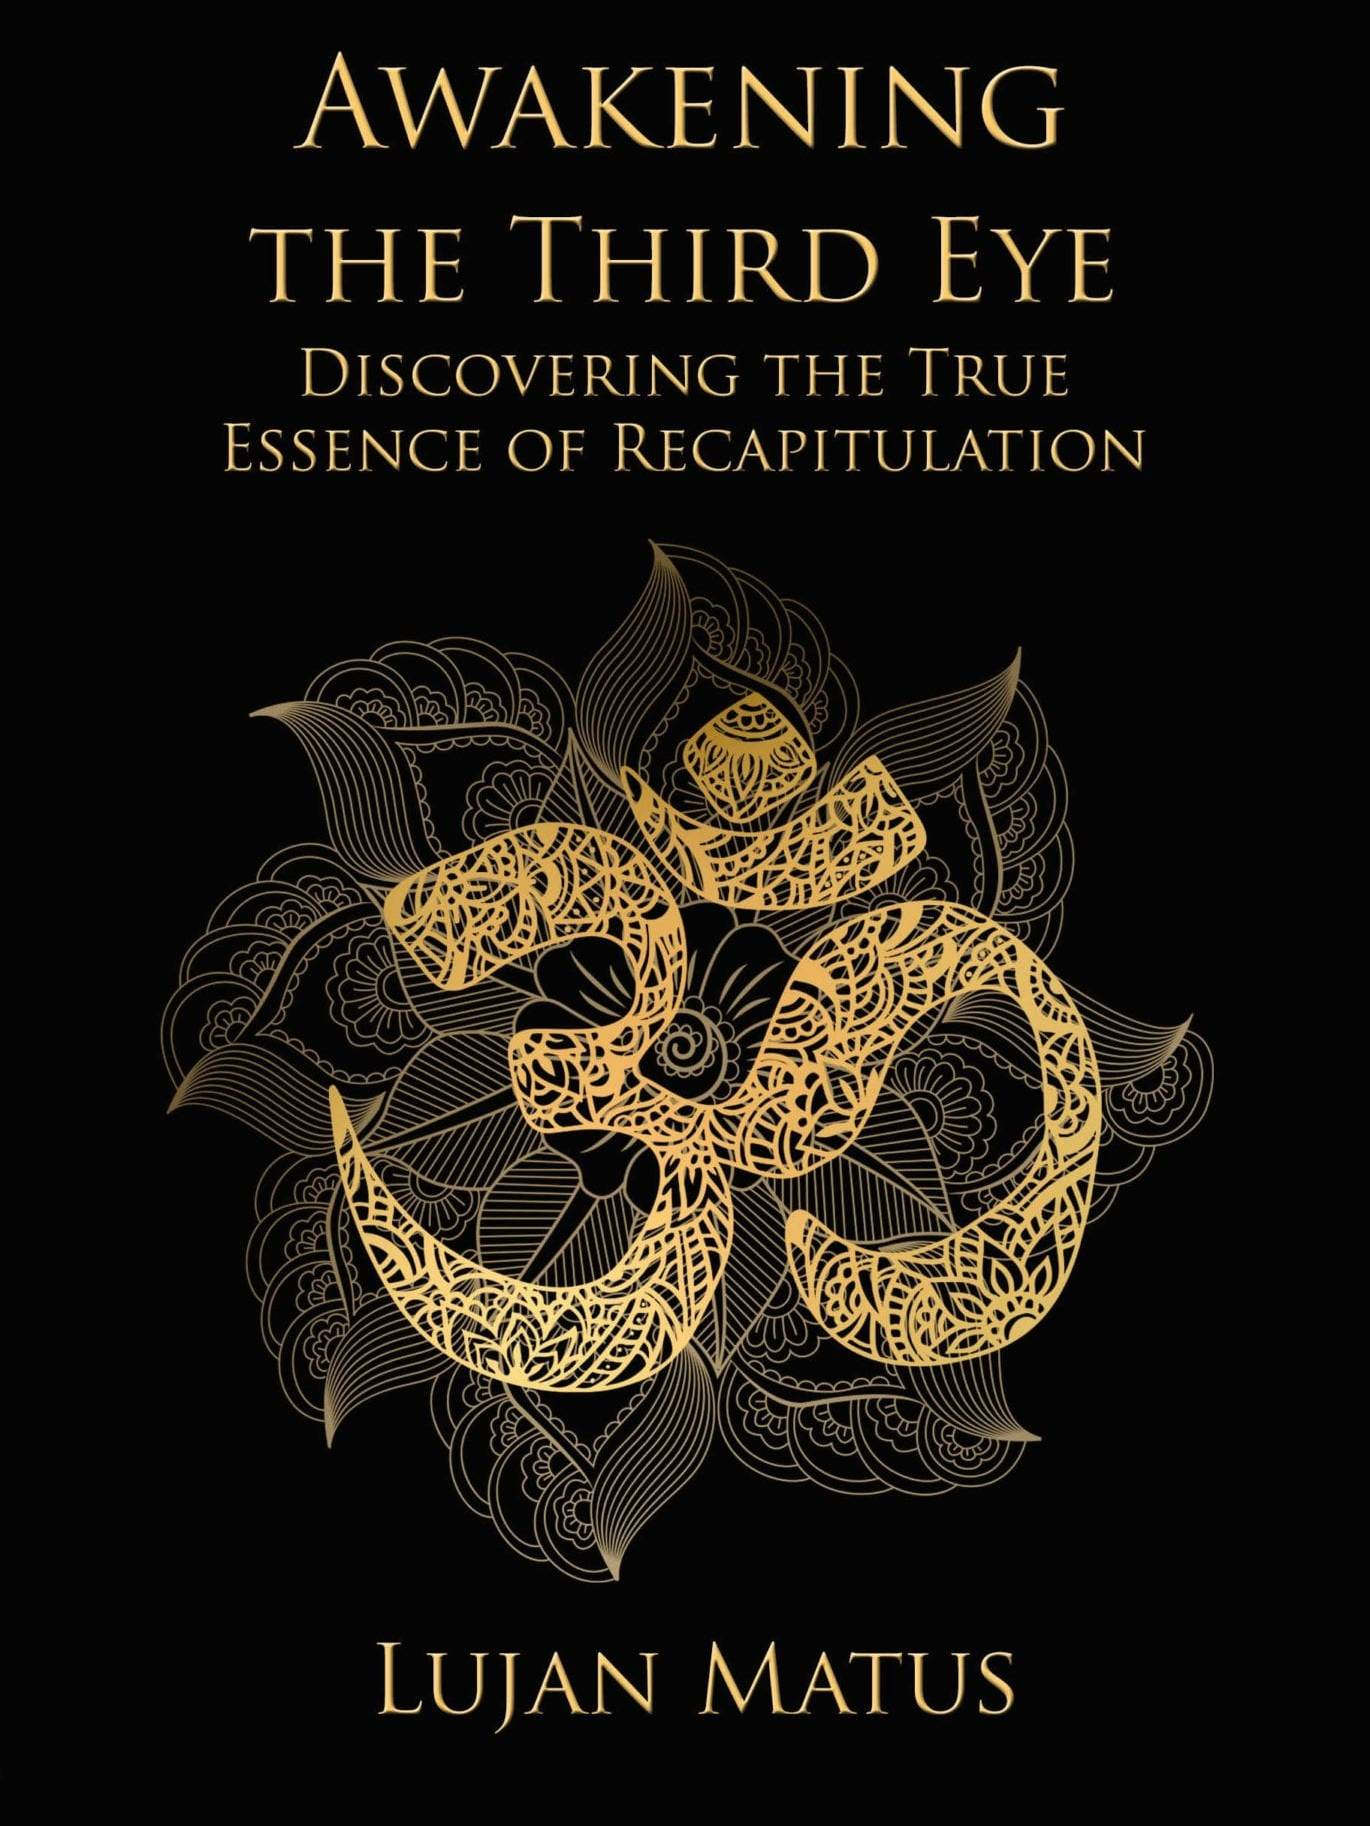 awakening-the-third-eye